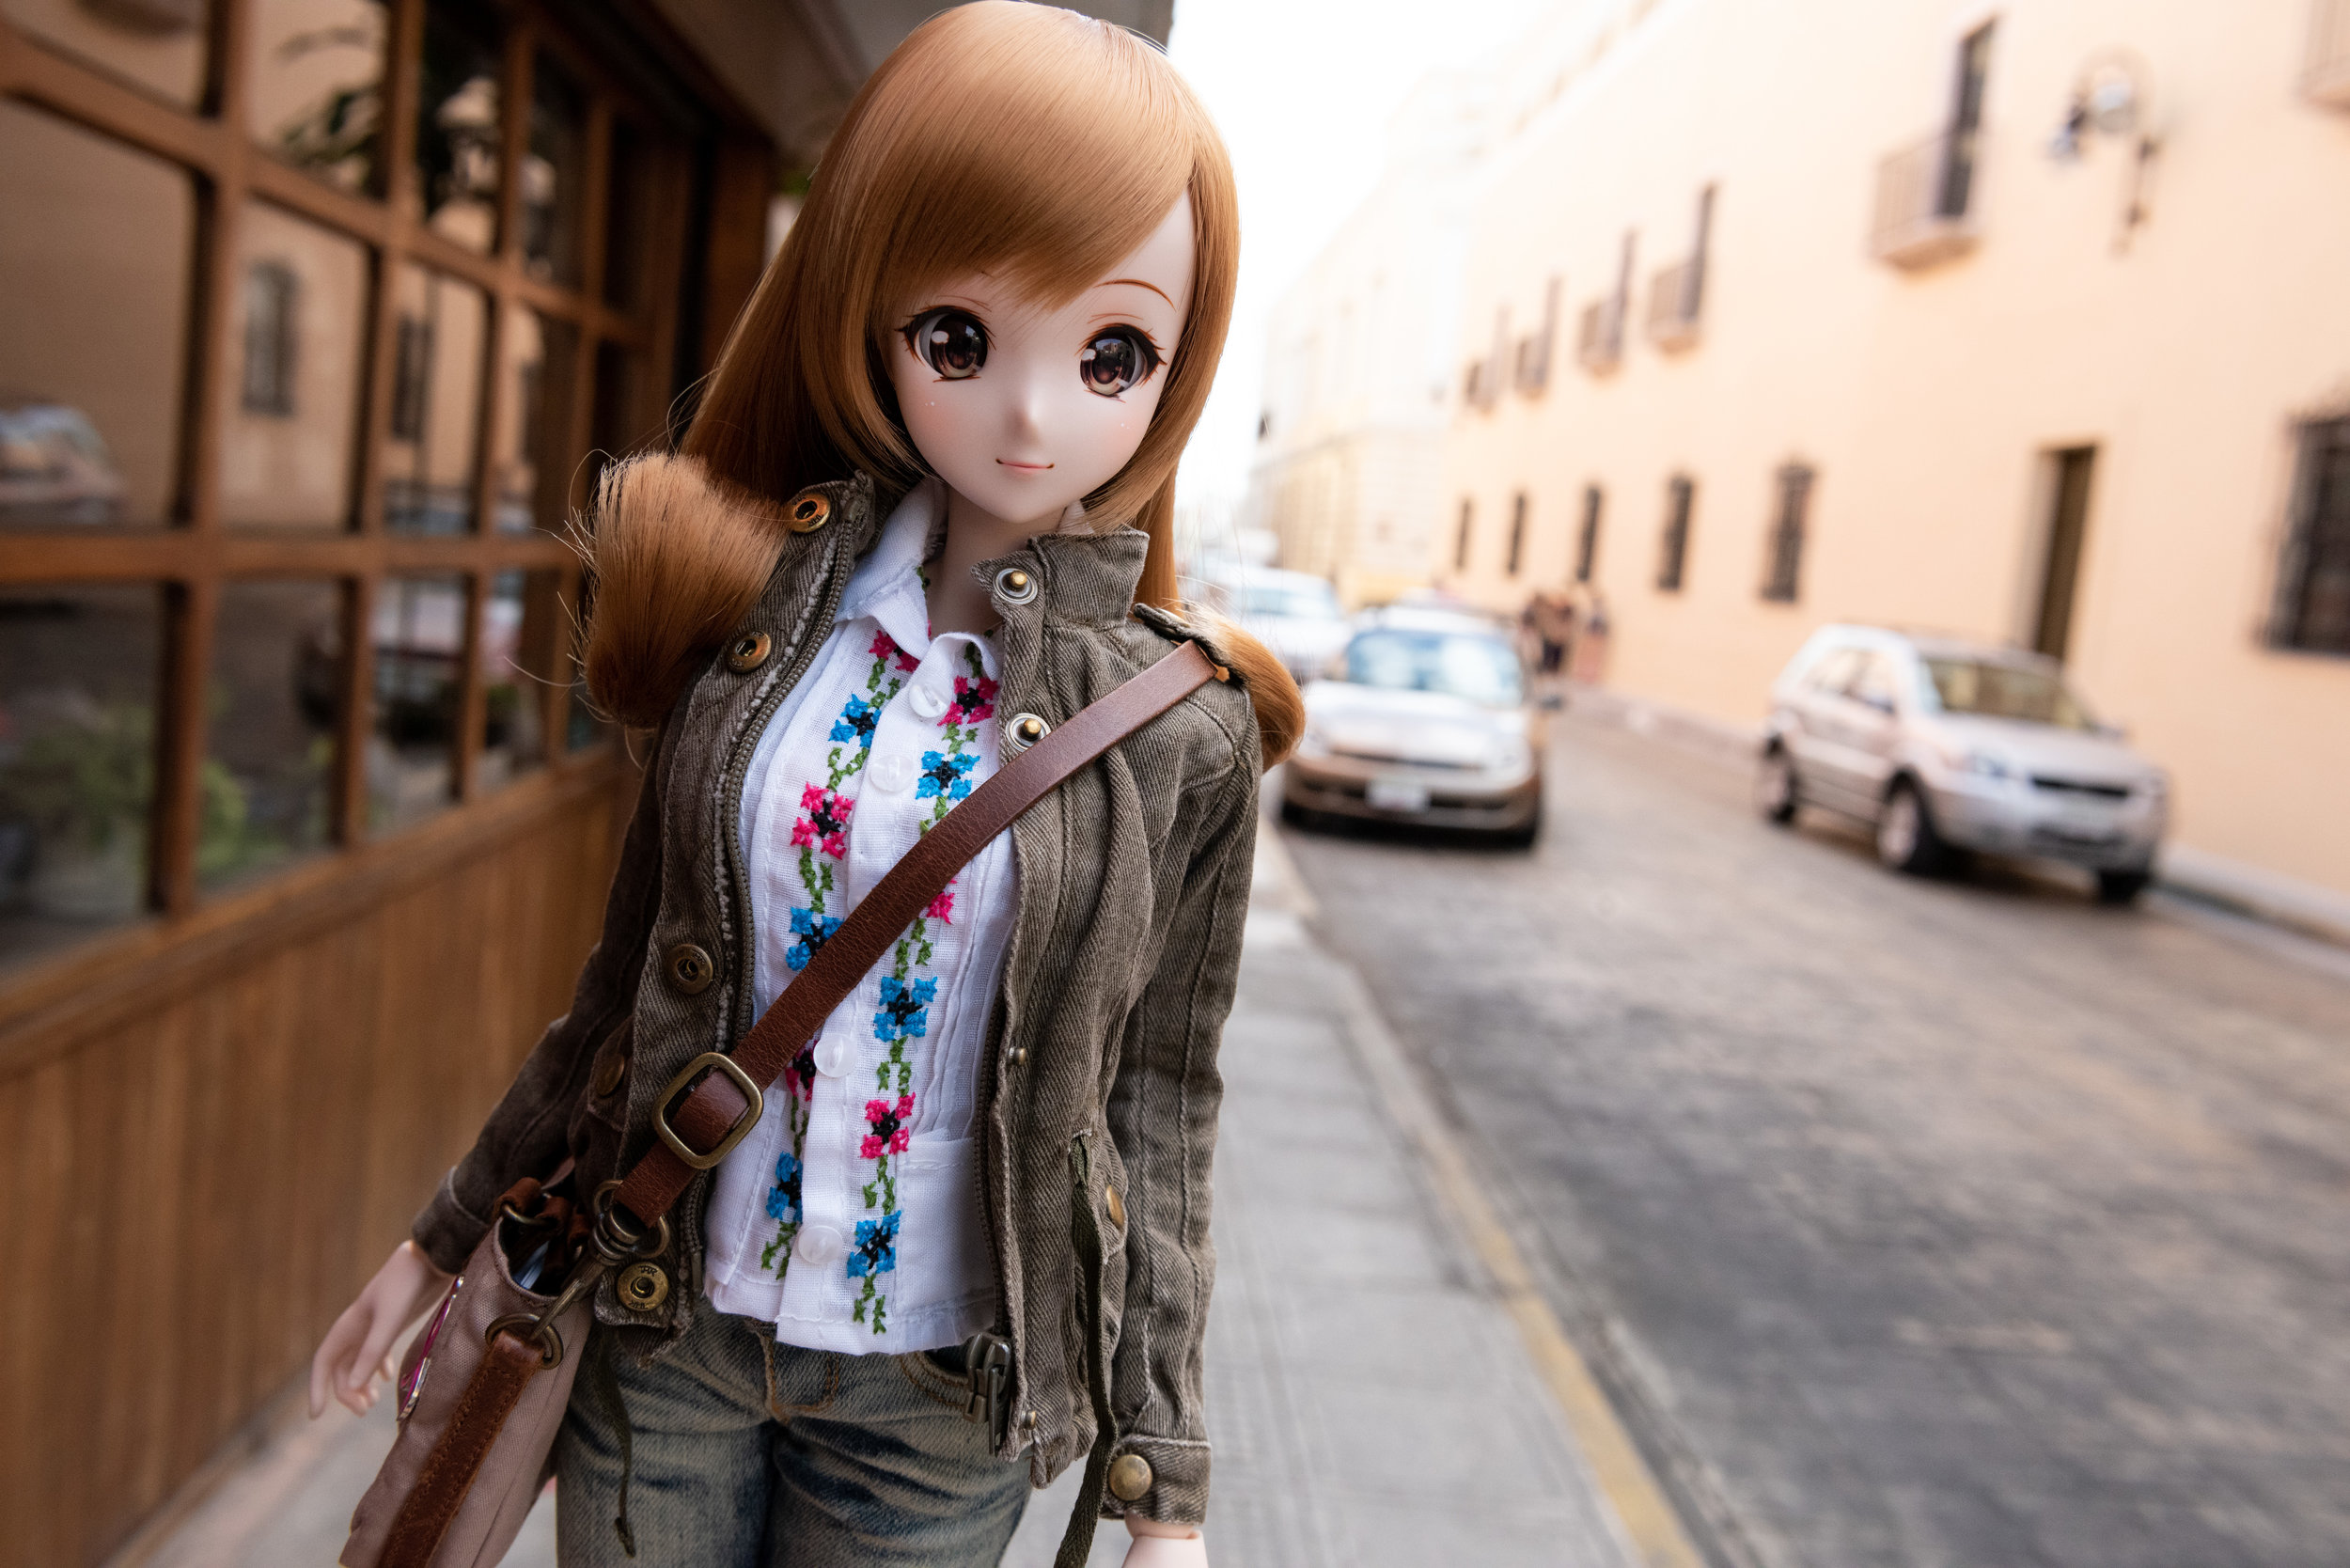 Some photos of Mirai out n about in Yucatan. ^^